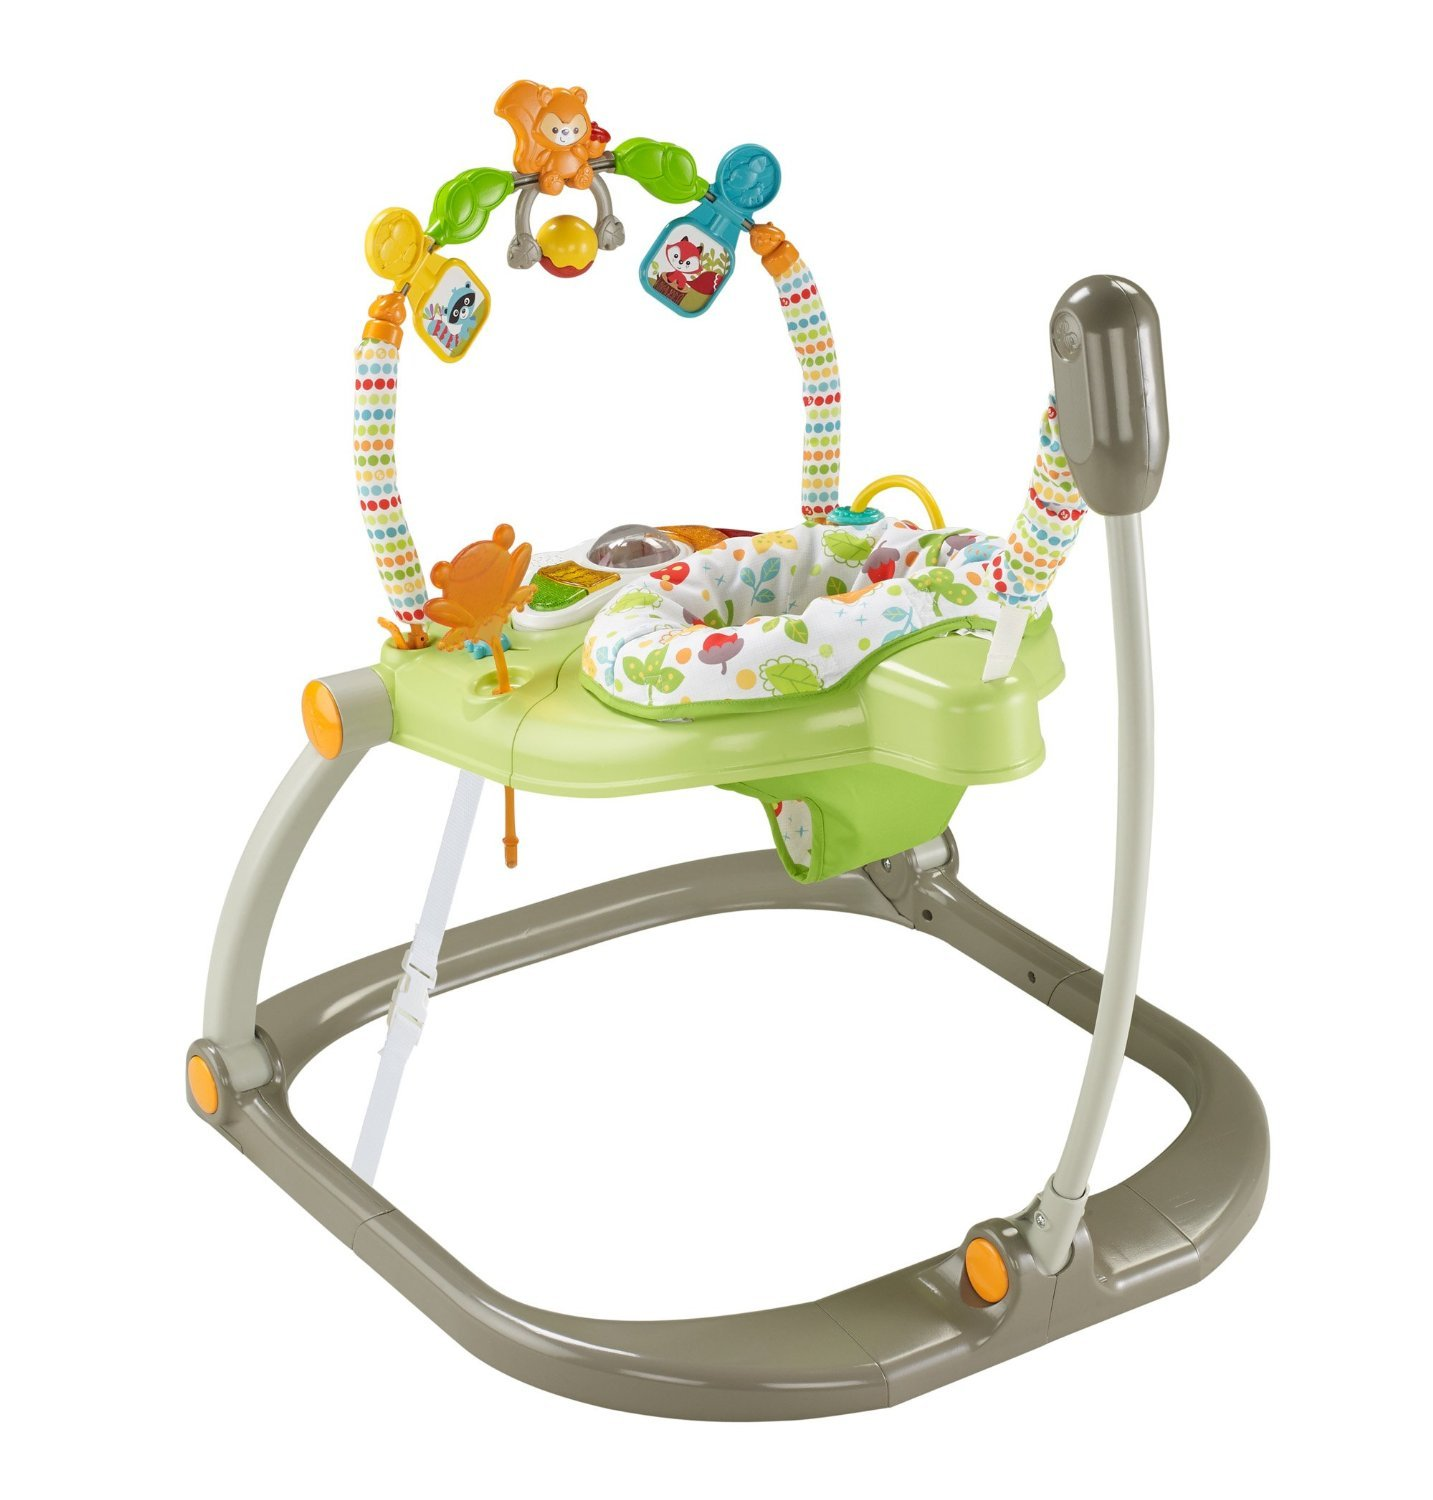 Amazon Fisher Price Woodland Friends SpaceSaver Jumperoo Baby